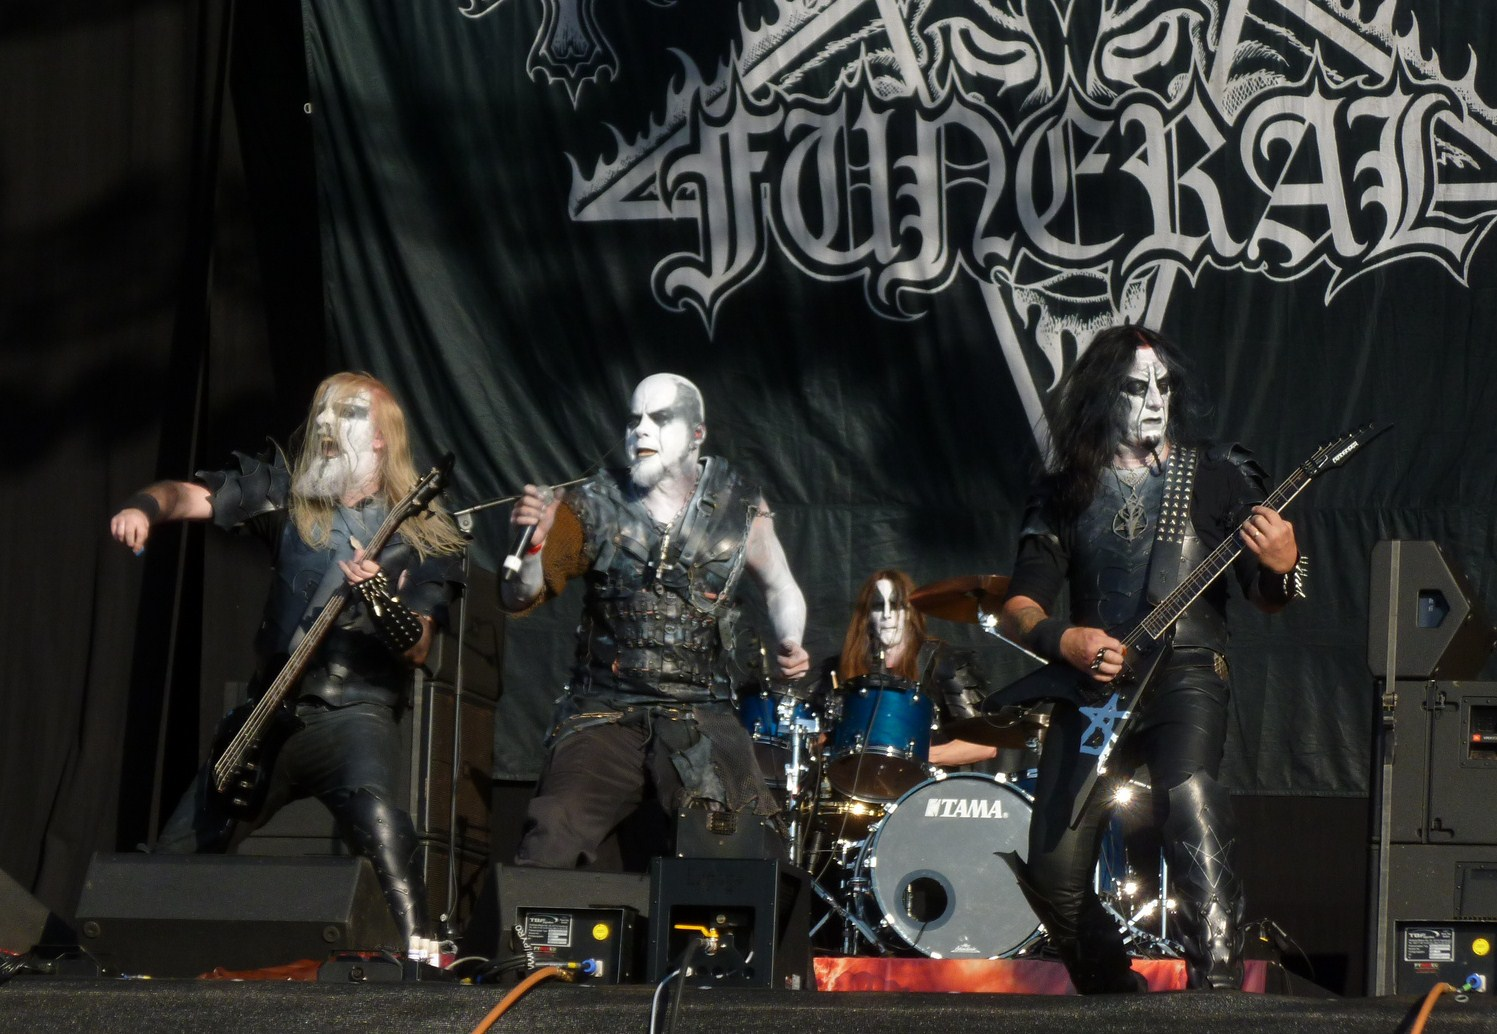 Description Dark Funeral at Wacken.jpg